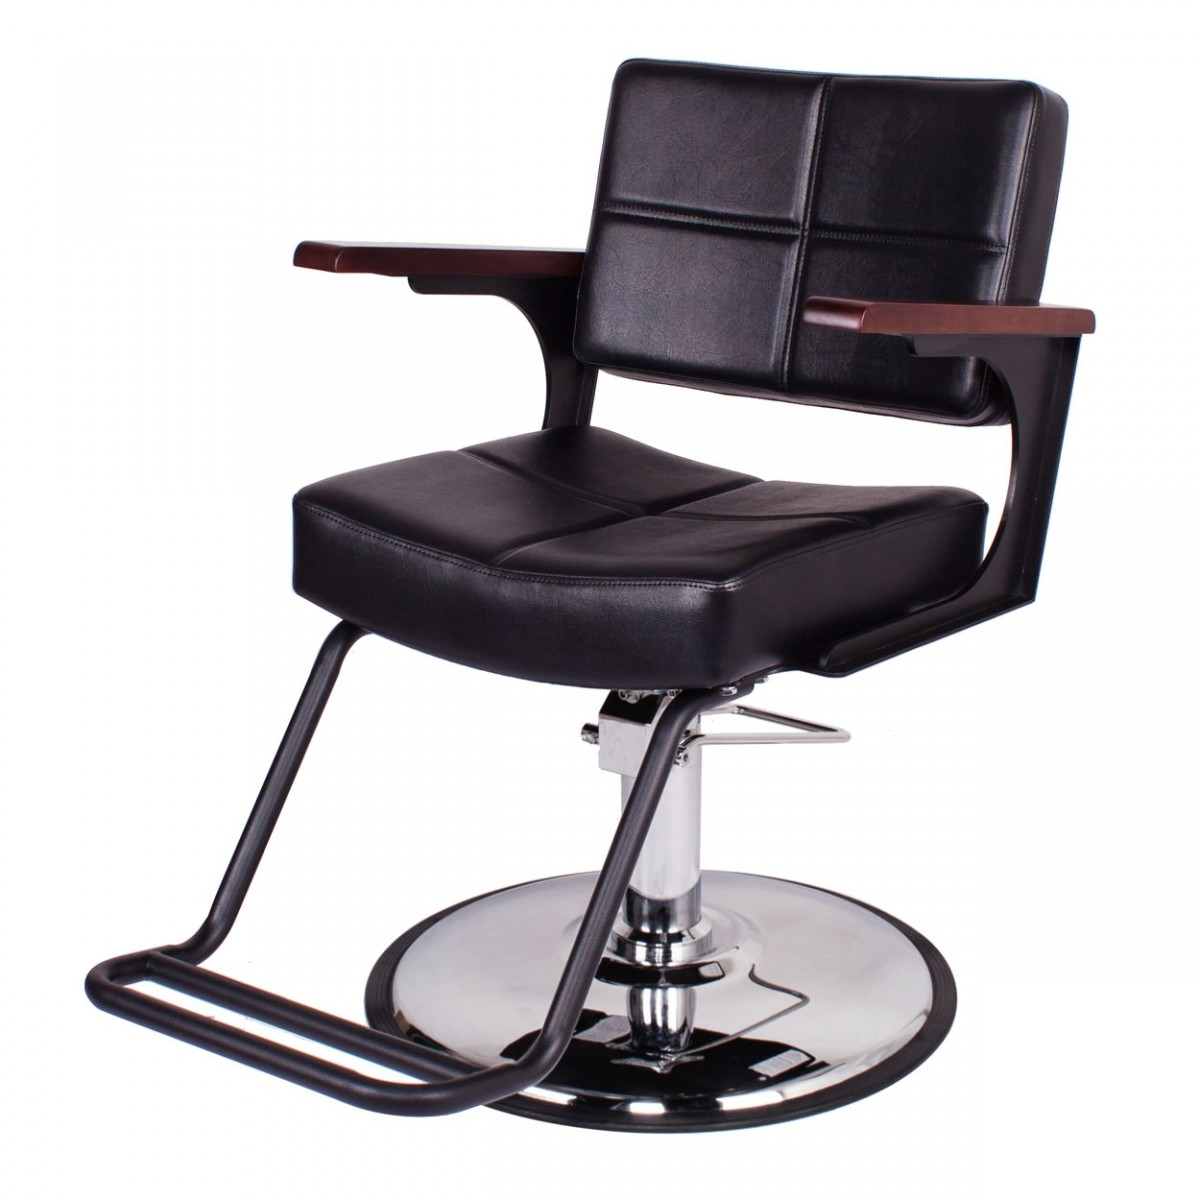 Industrial Look Chairs Quottribeca Quot Industrial Style Salon Chair Modern Salon Chair